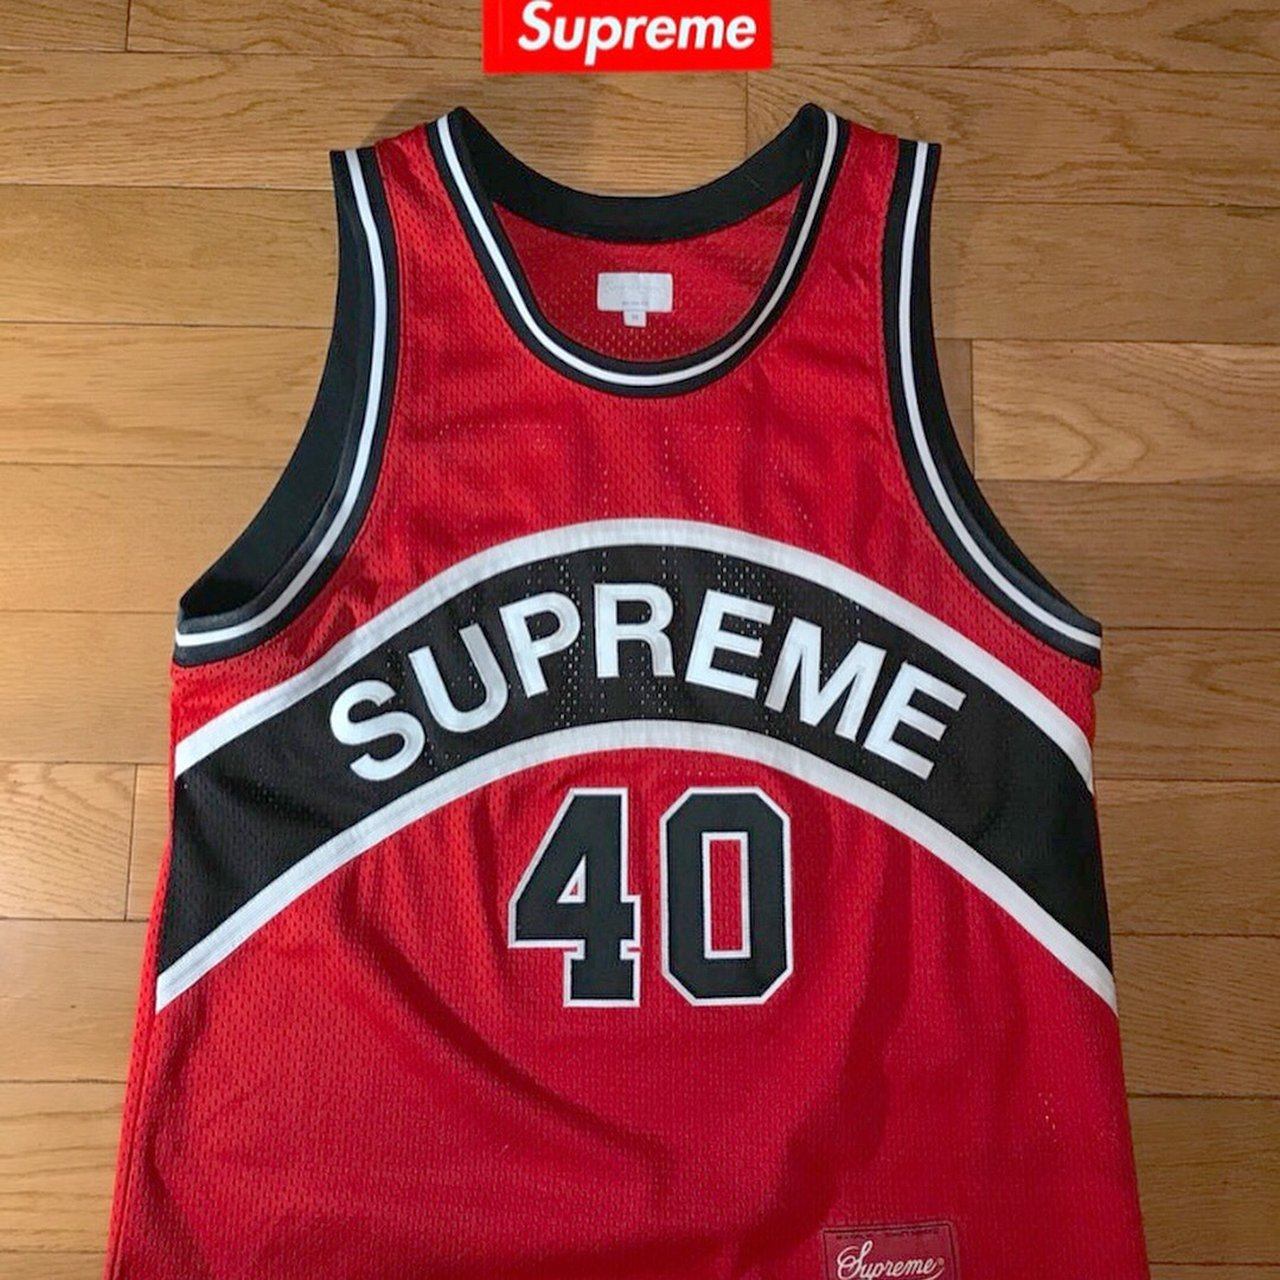 d768a6617  dameronrodrigue. 3 months ago. United States. Supreme® Curved Basketball  Jersey